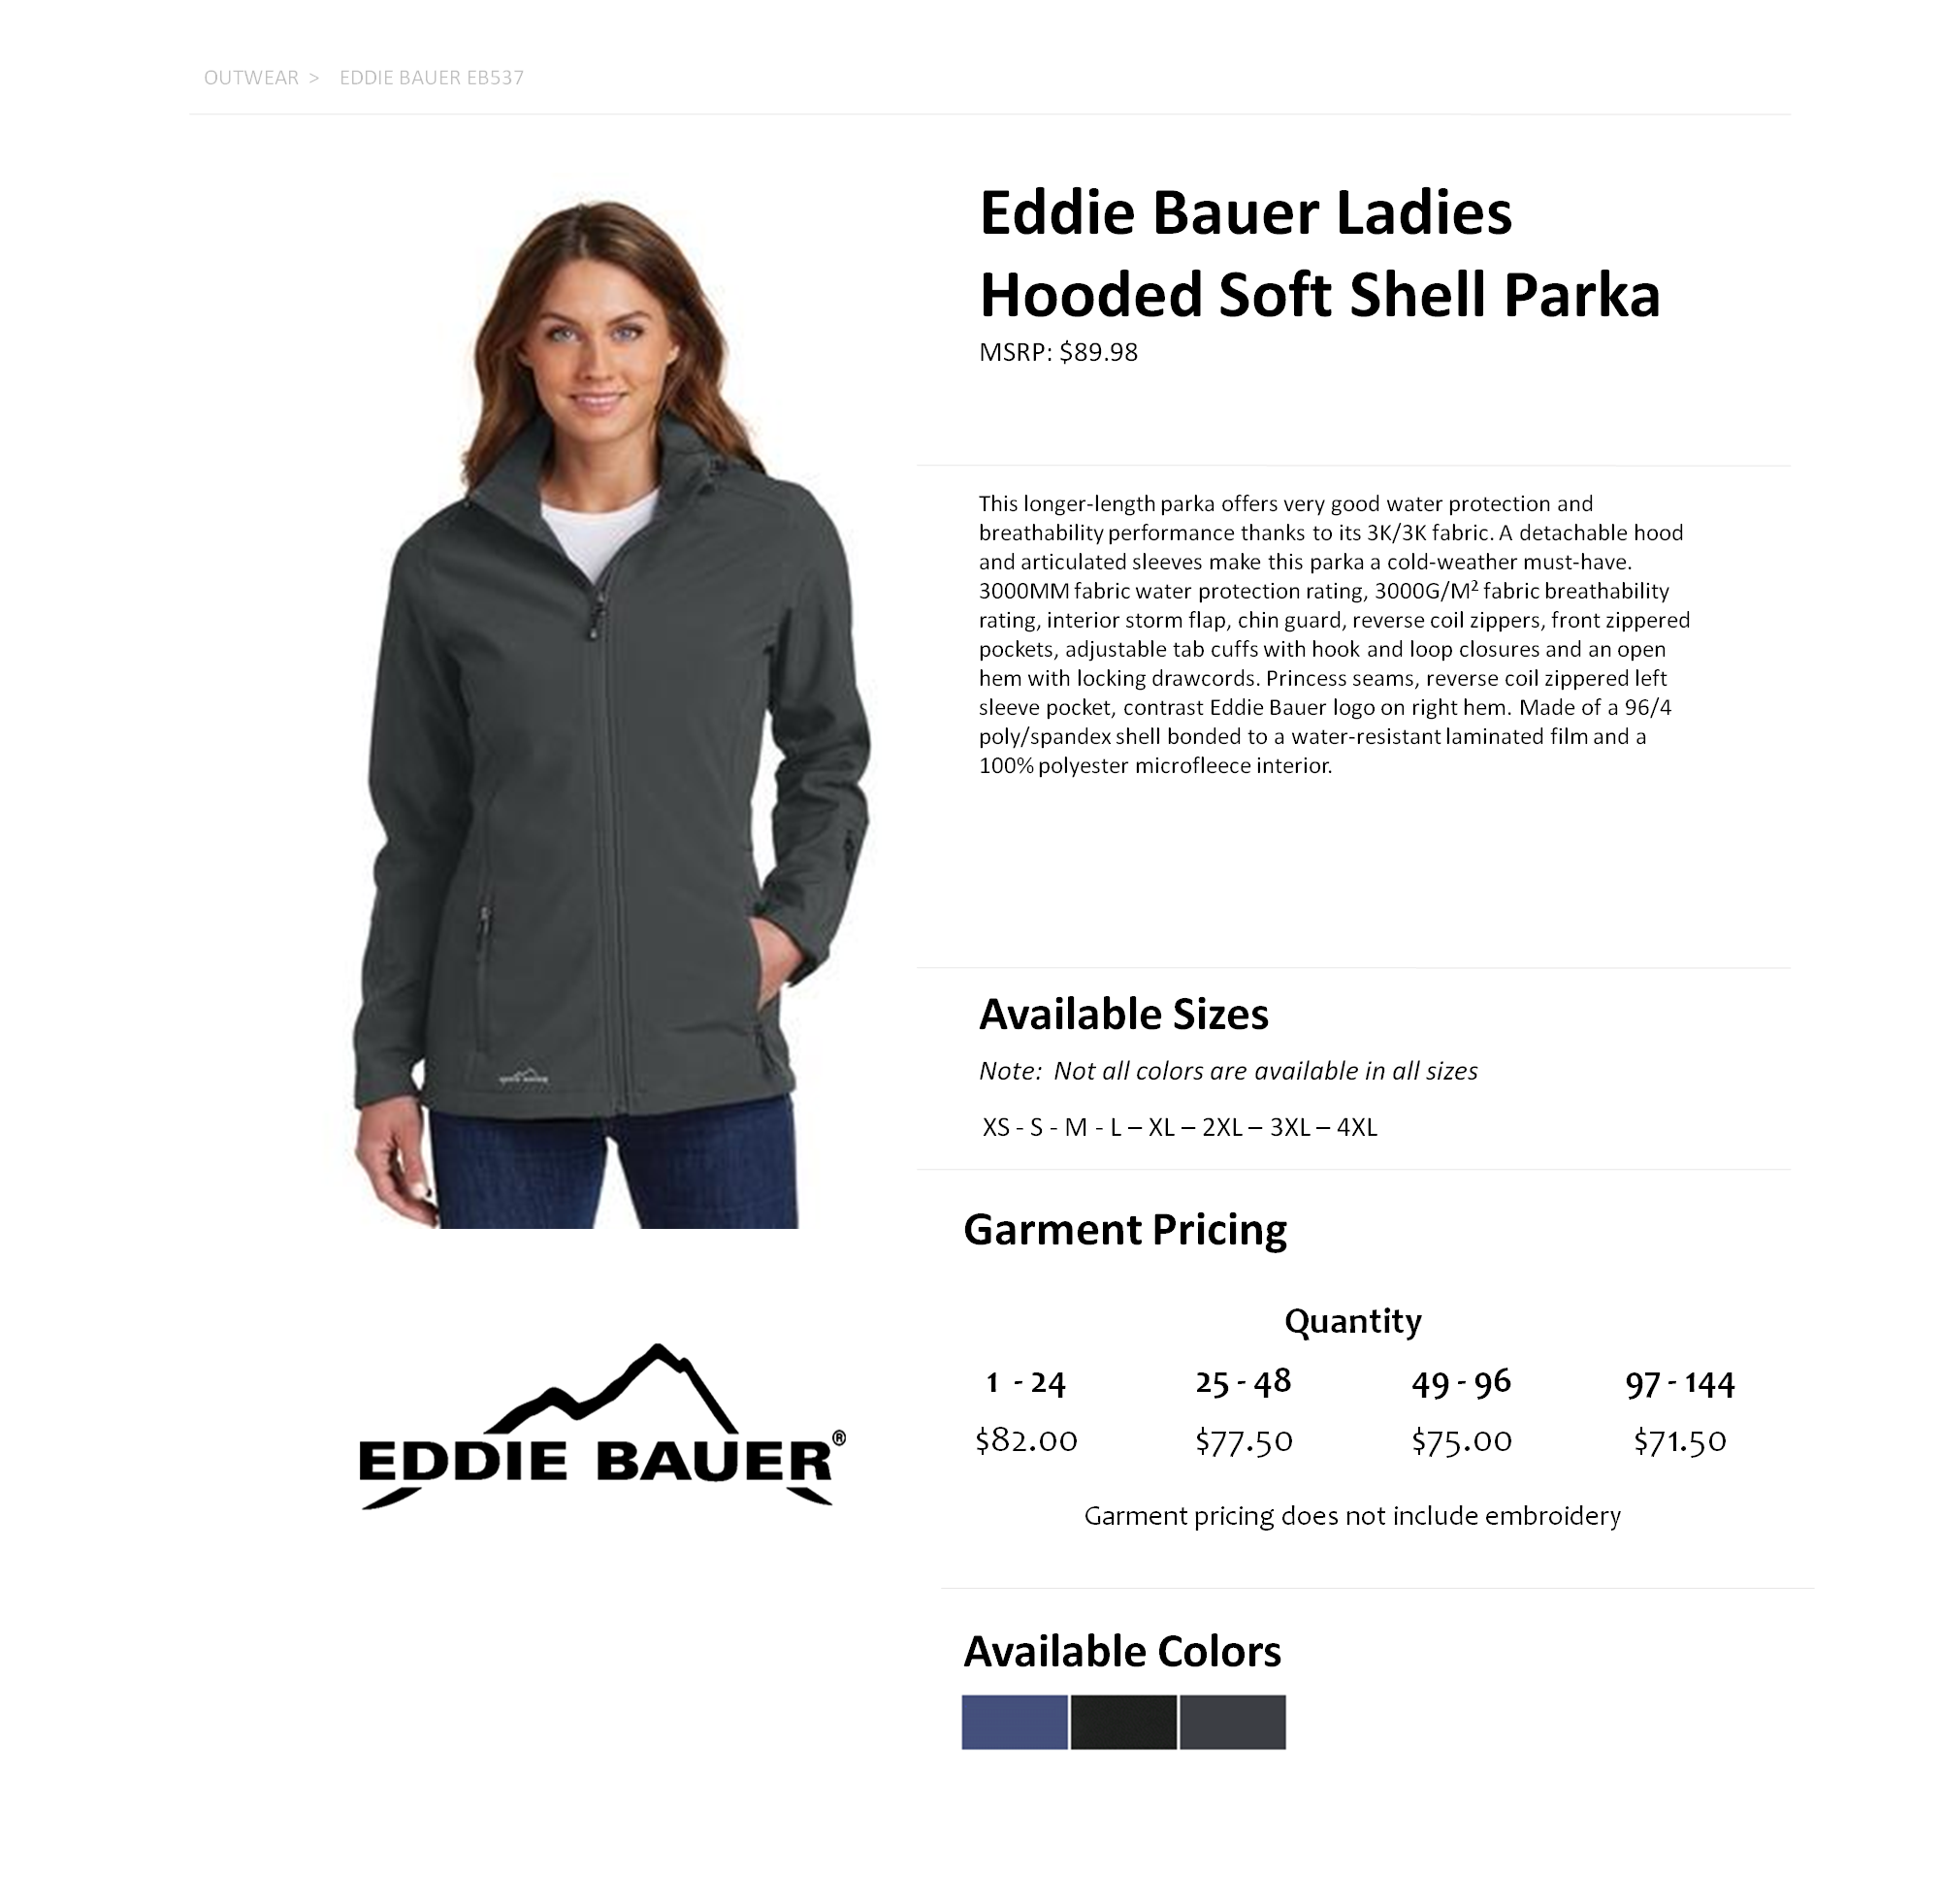 e038ca6b35e EB537 Eddie Bauer Hooded Soft Shell Jacket Parka — American Icon Merchandise